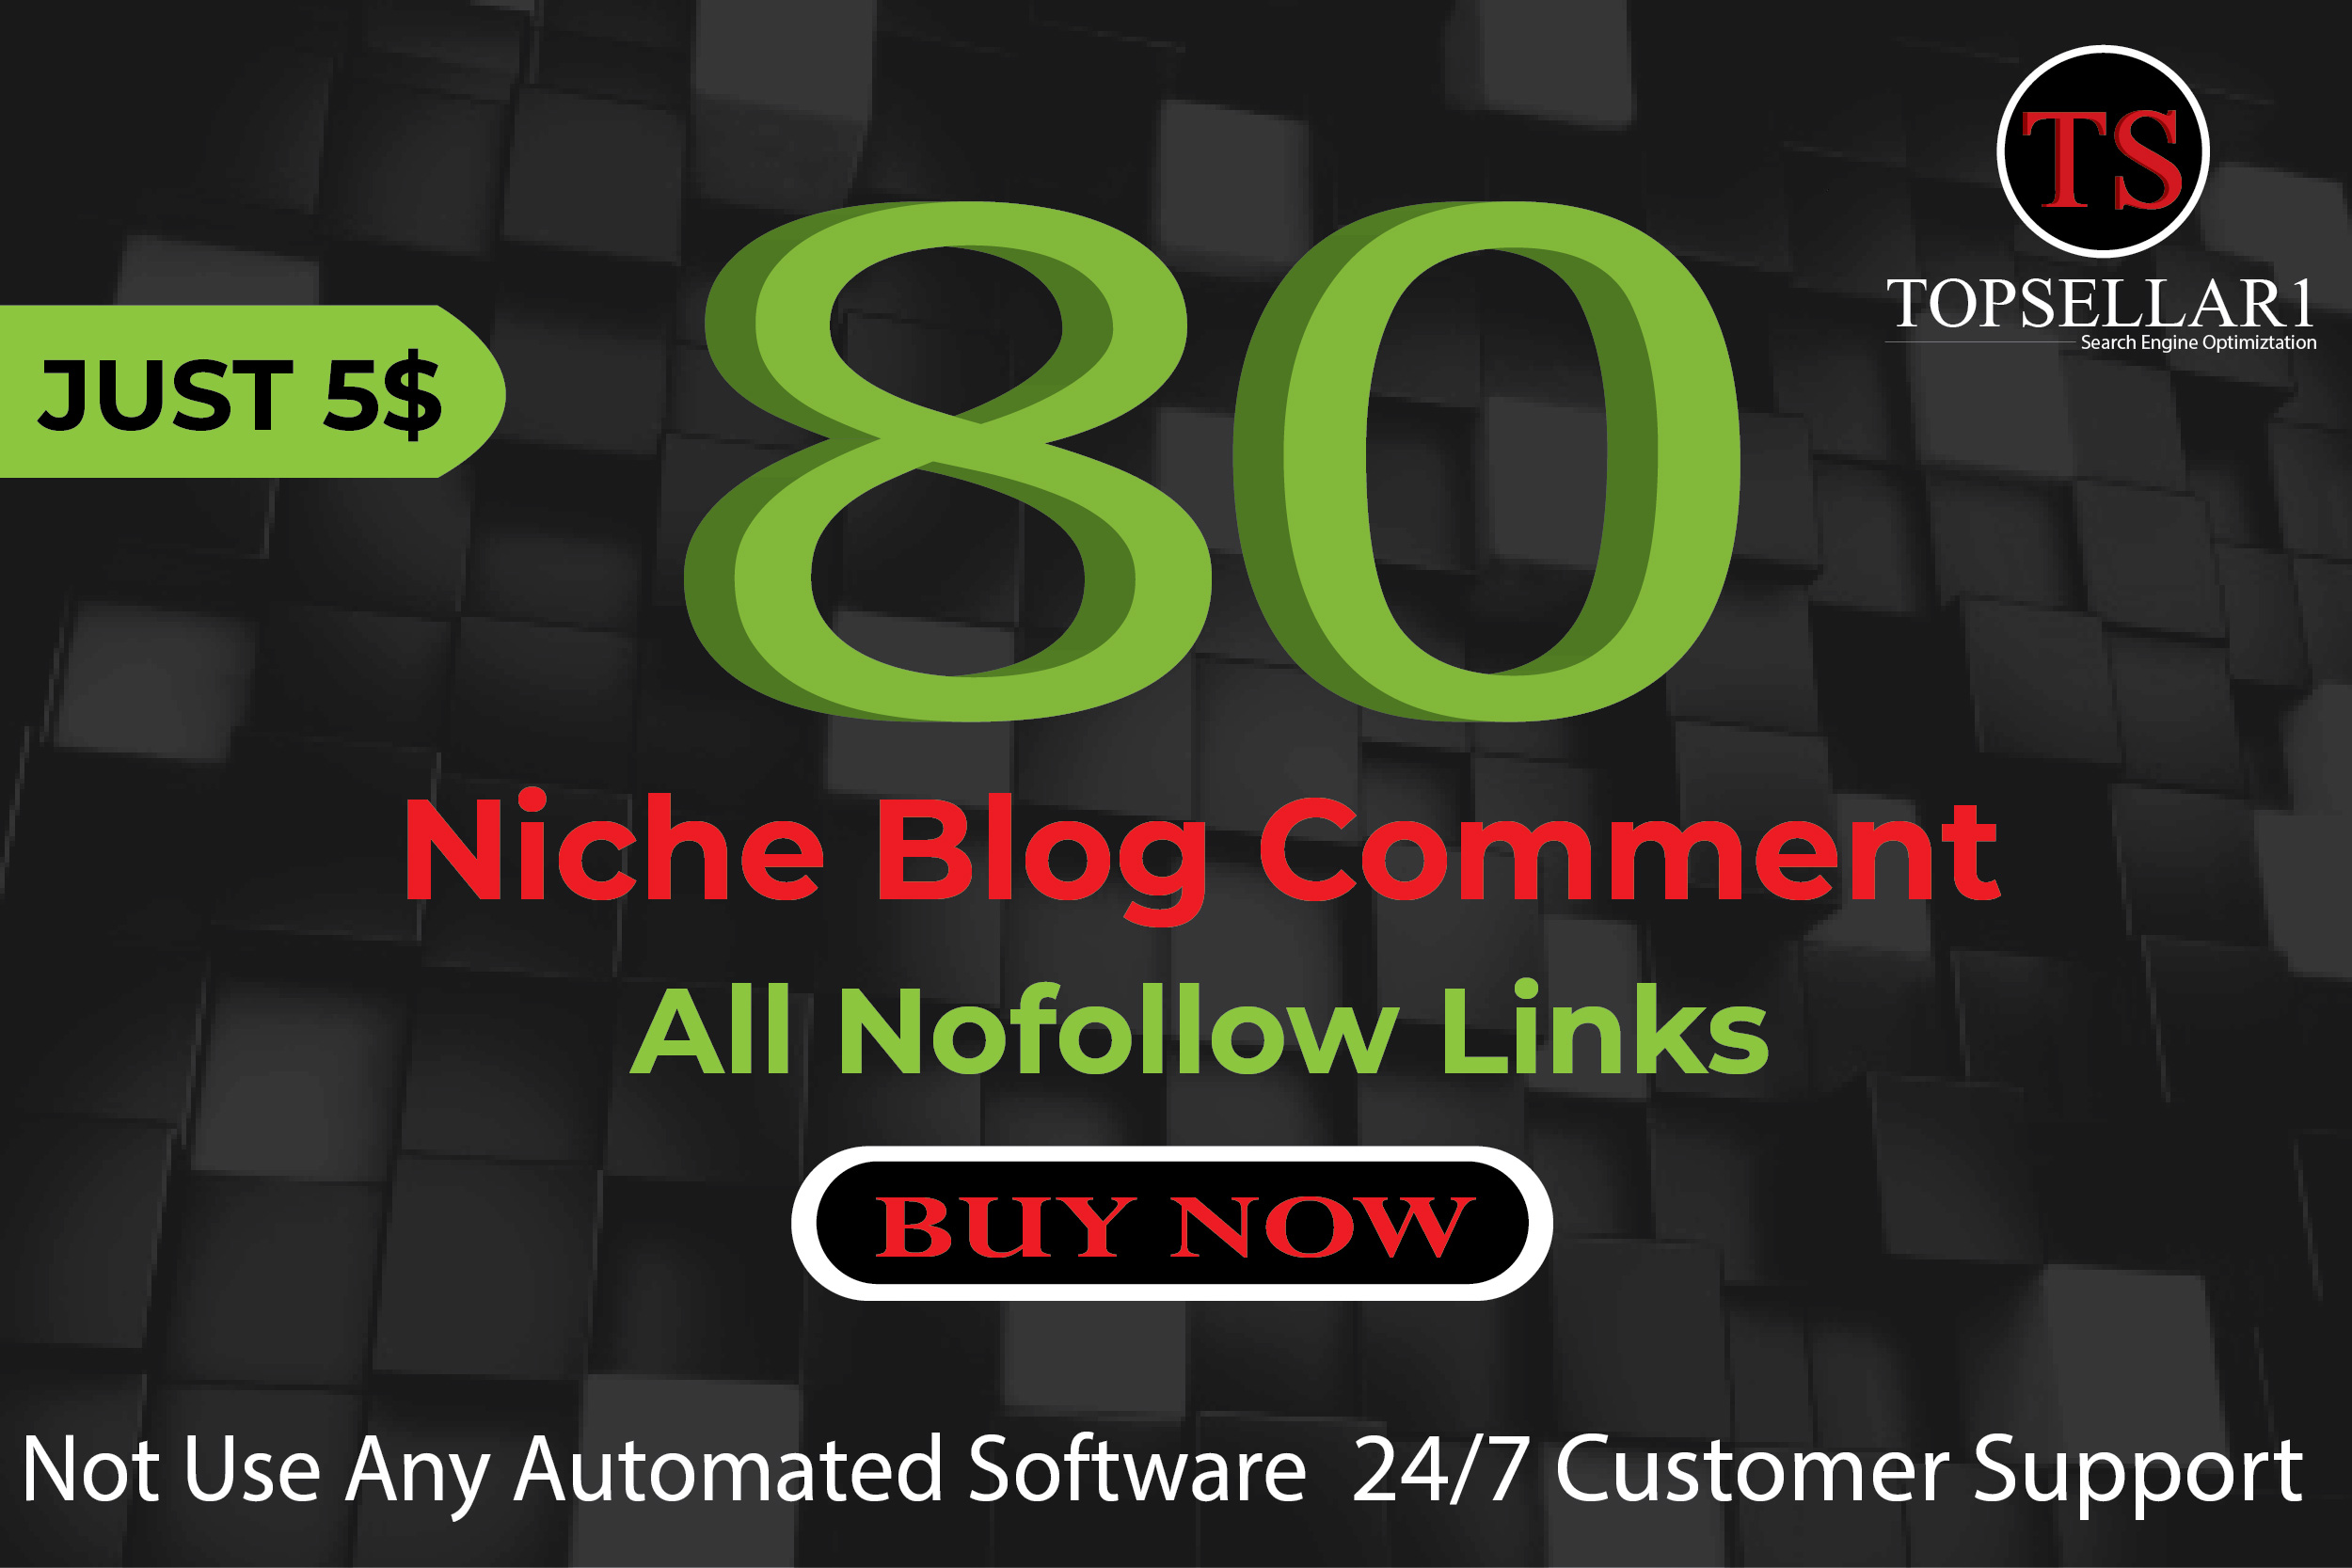 I Will Make 80 Niche Relavant Blog Comments Backlinks High Quality Links